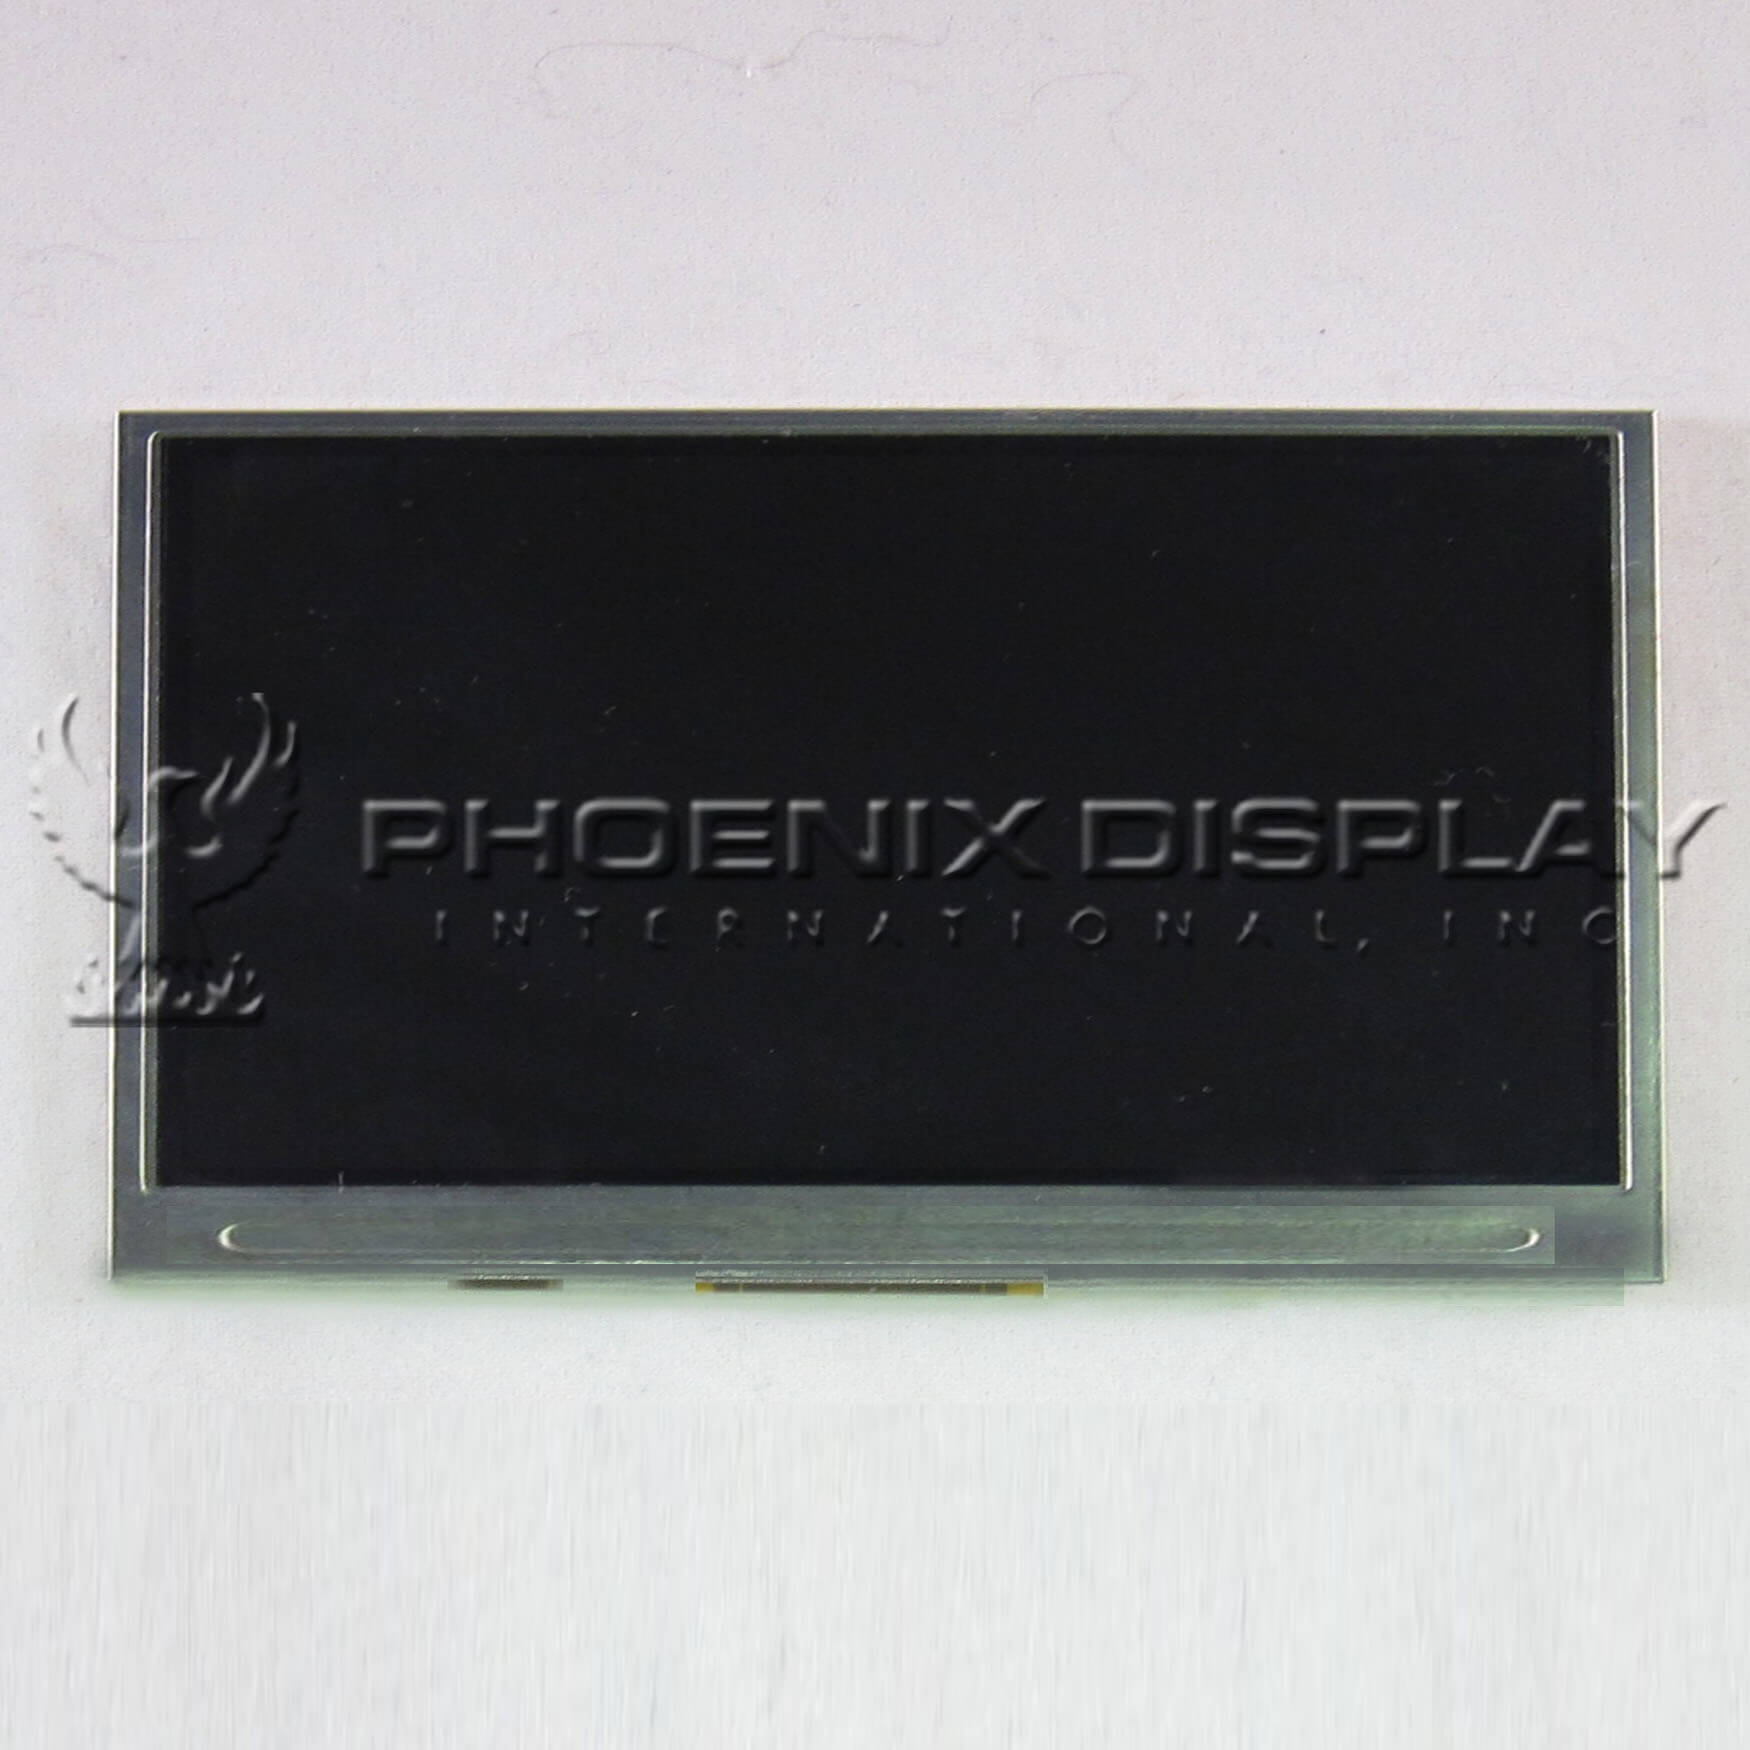 5.0 800 x 480 Transmissive Color TFT Display | PDI101T-HBD-50A | Phoenix Display International